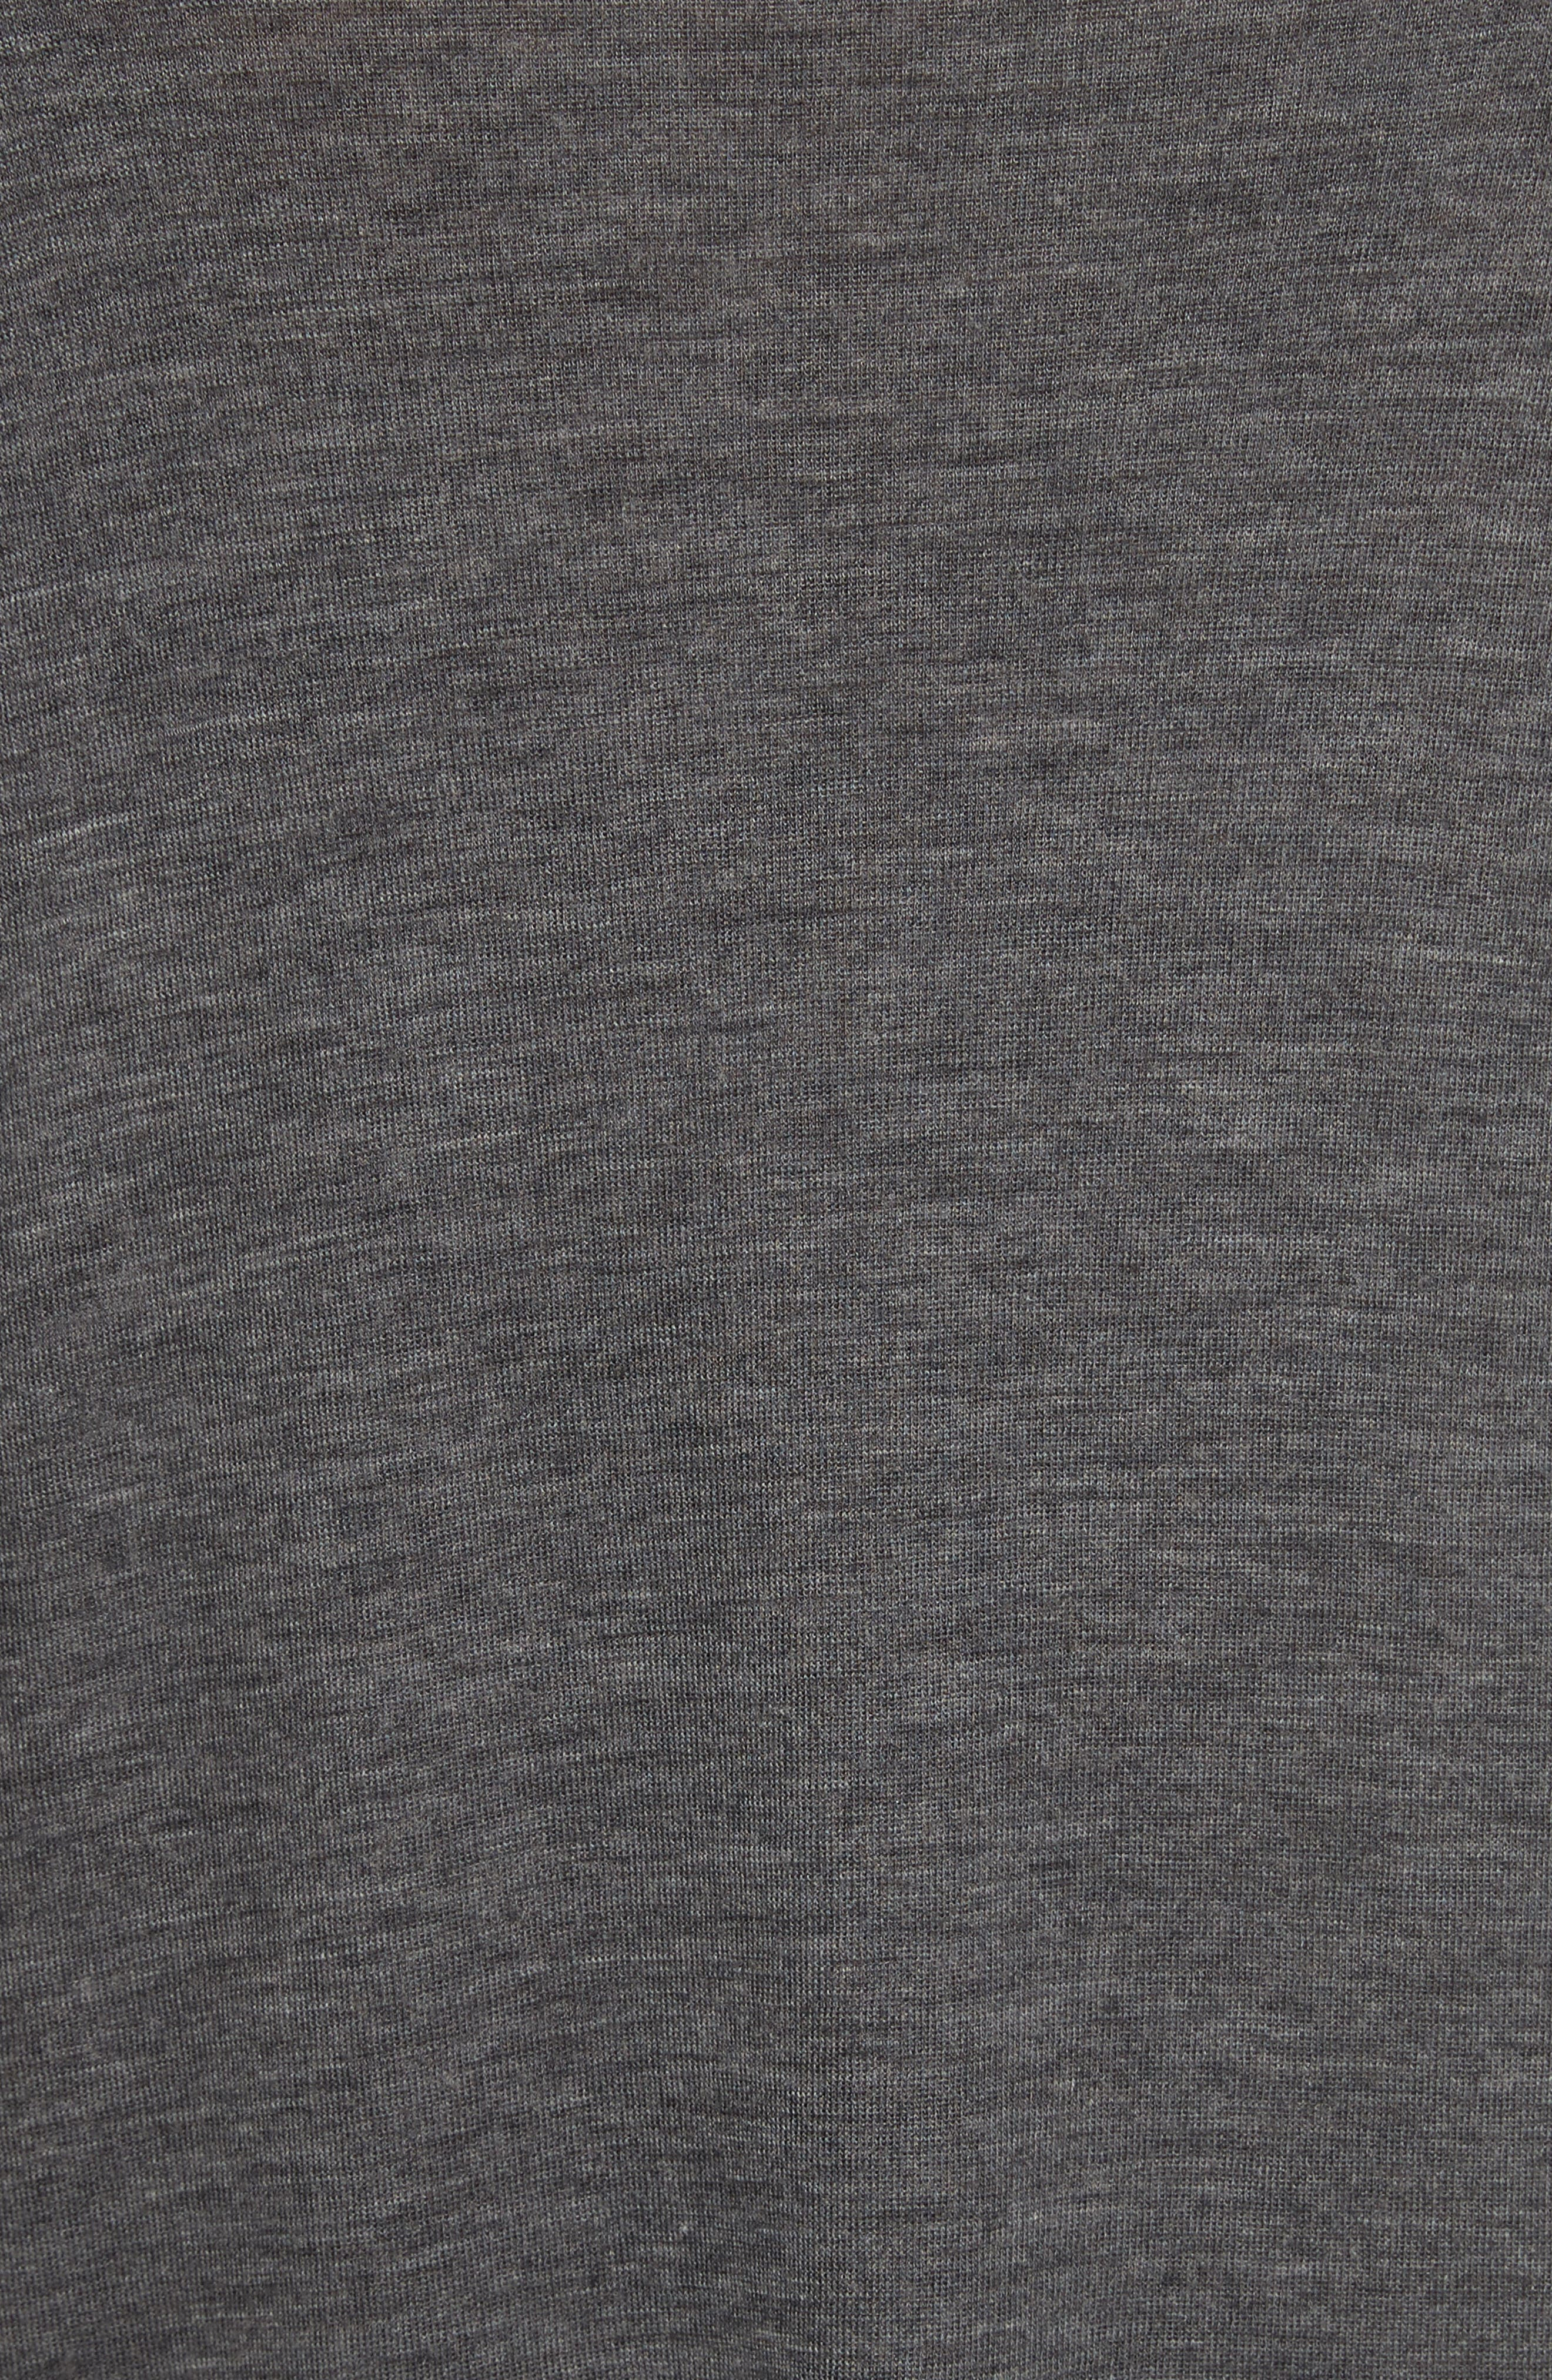 Wool Pullover,                             Alternate thumbnail 5, color,                             033